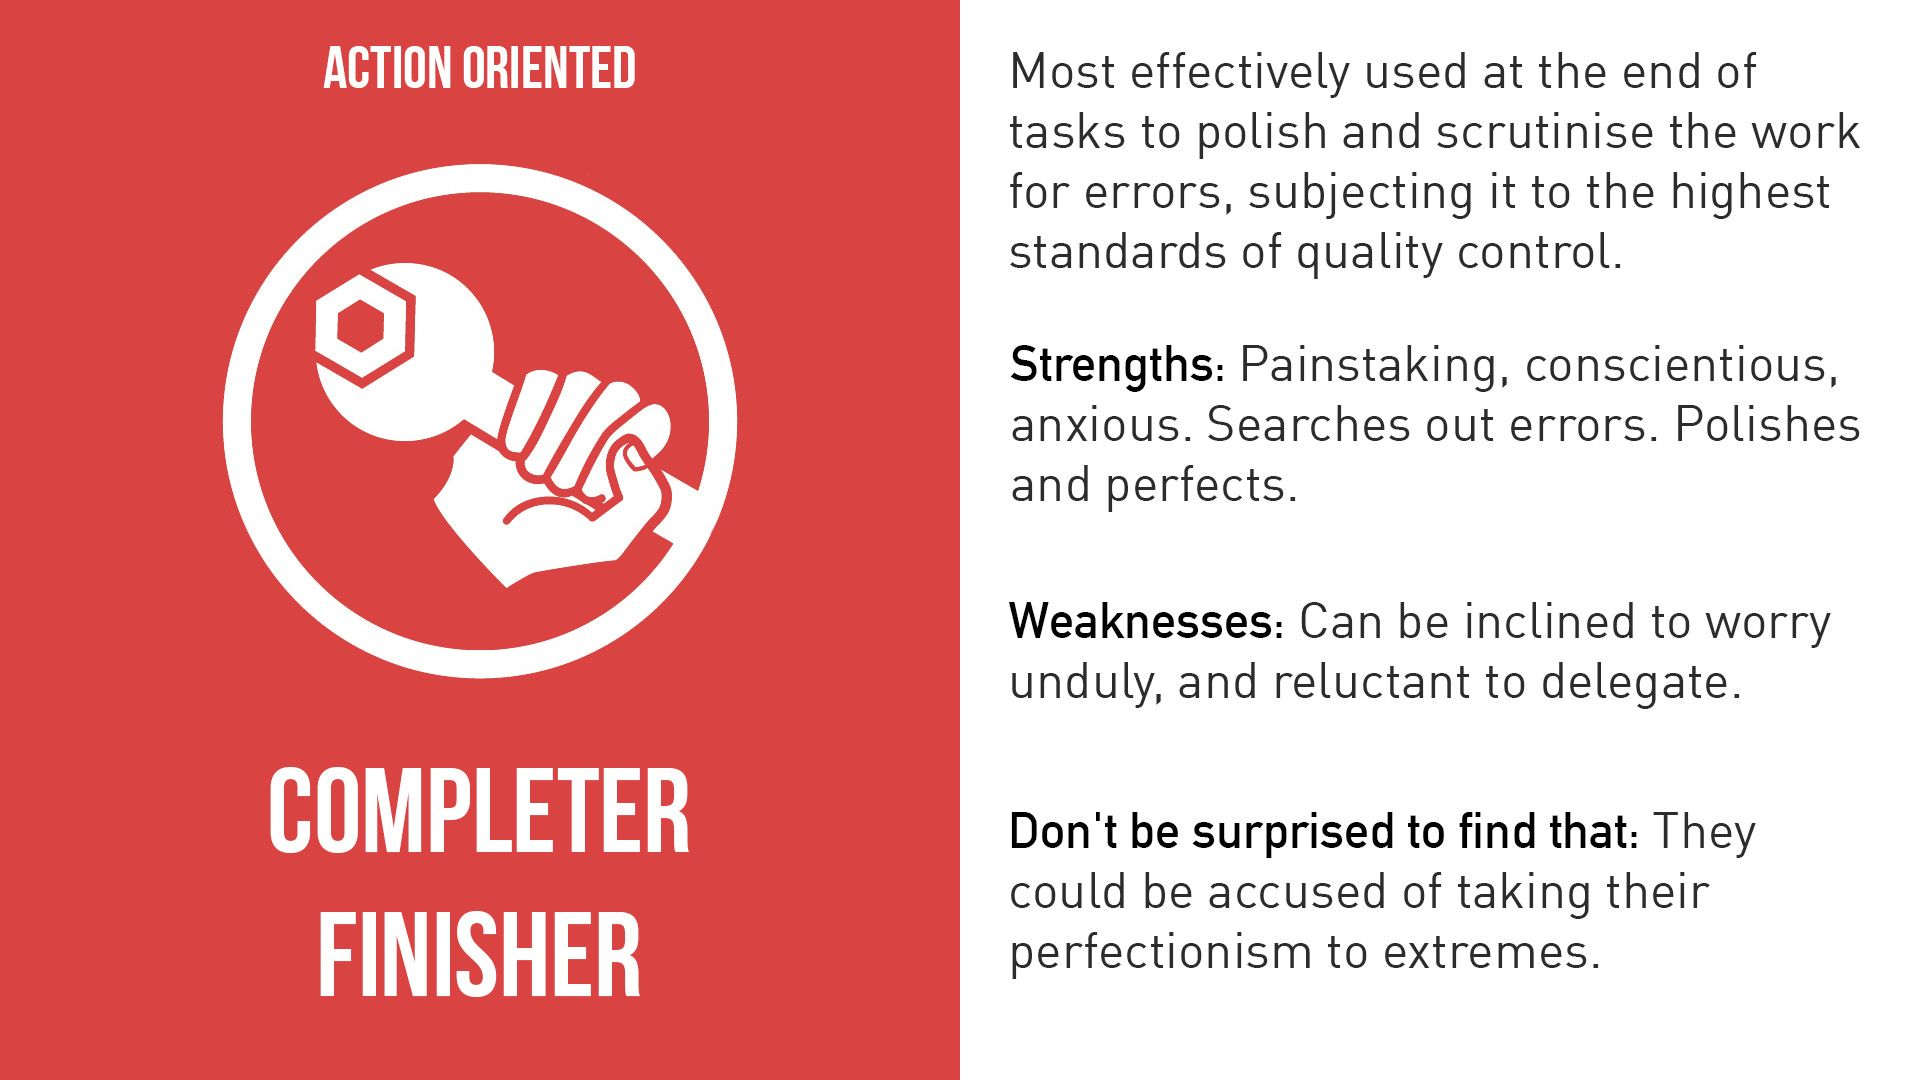 Completer-Finishers are the people who see that projects are completed thoroughly. They ensure there have been no errors or omissions and they pay attention to the smallest of details. They are very concerned with deadlines and will push the team to make sure the job is completed on time. They are described as perfectionists who are orderly, conscientious and anxious. However, a Completer-Finisher may worry unnecessarily and may find it hard to delegate.